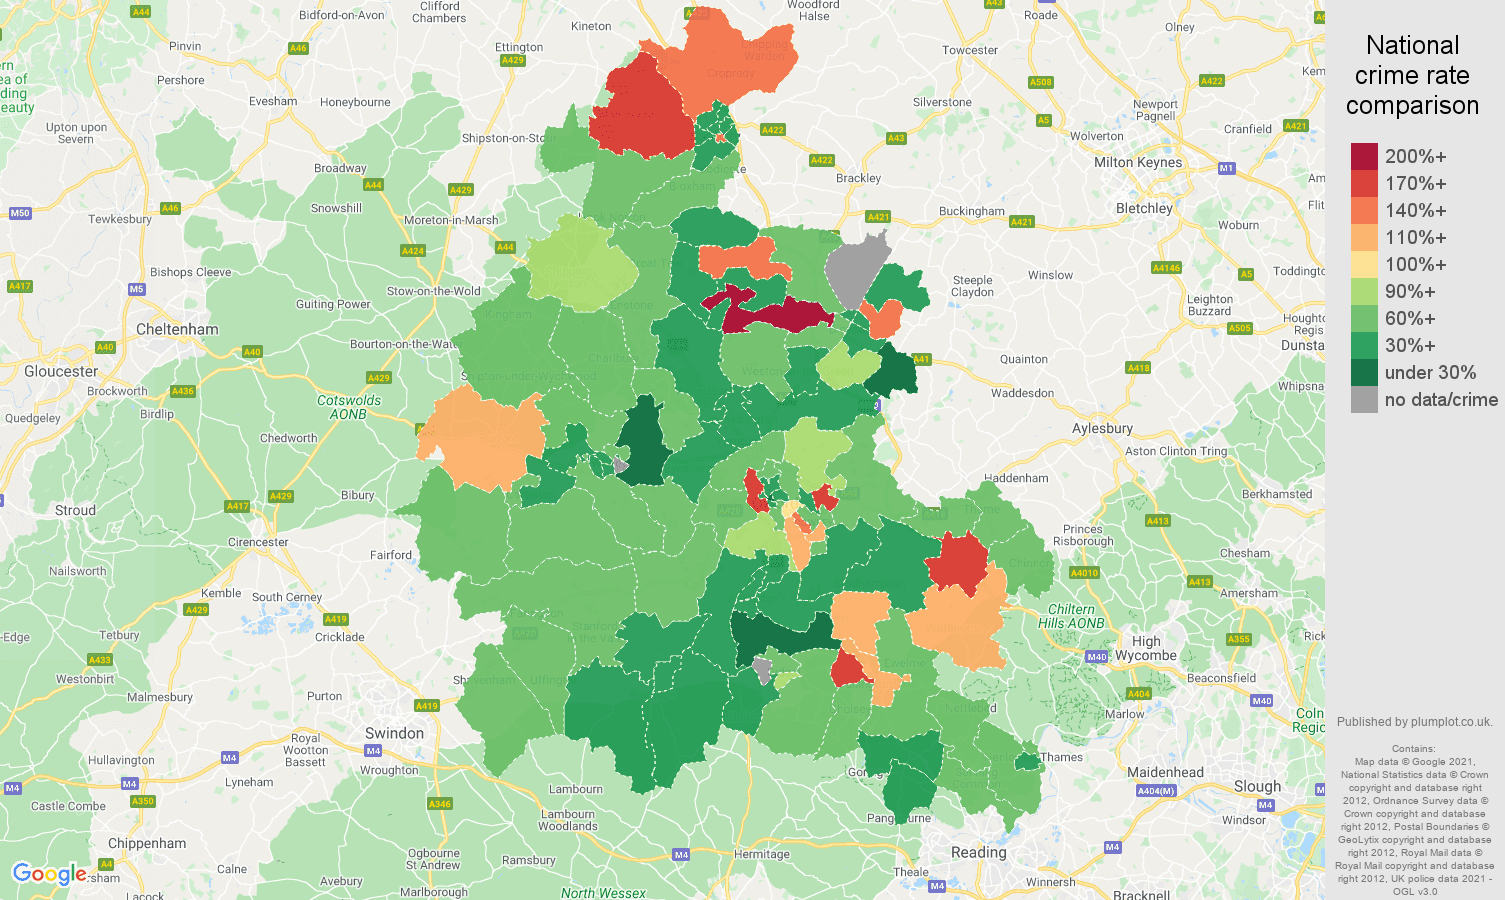 Oxfordshire burglary crime rate comparison map